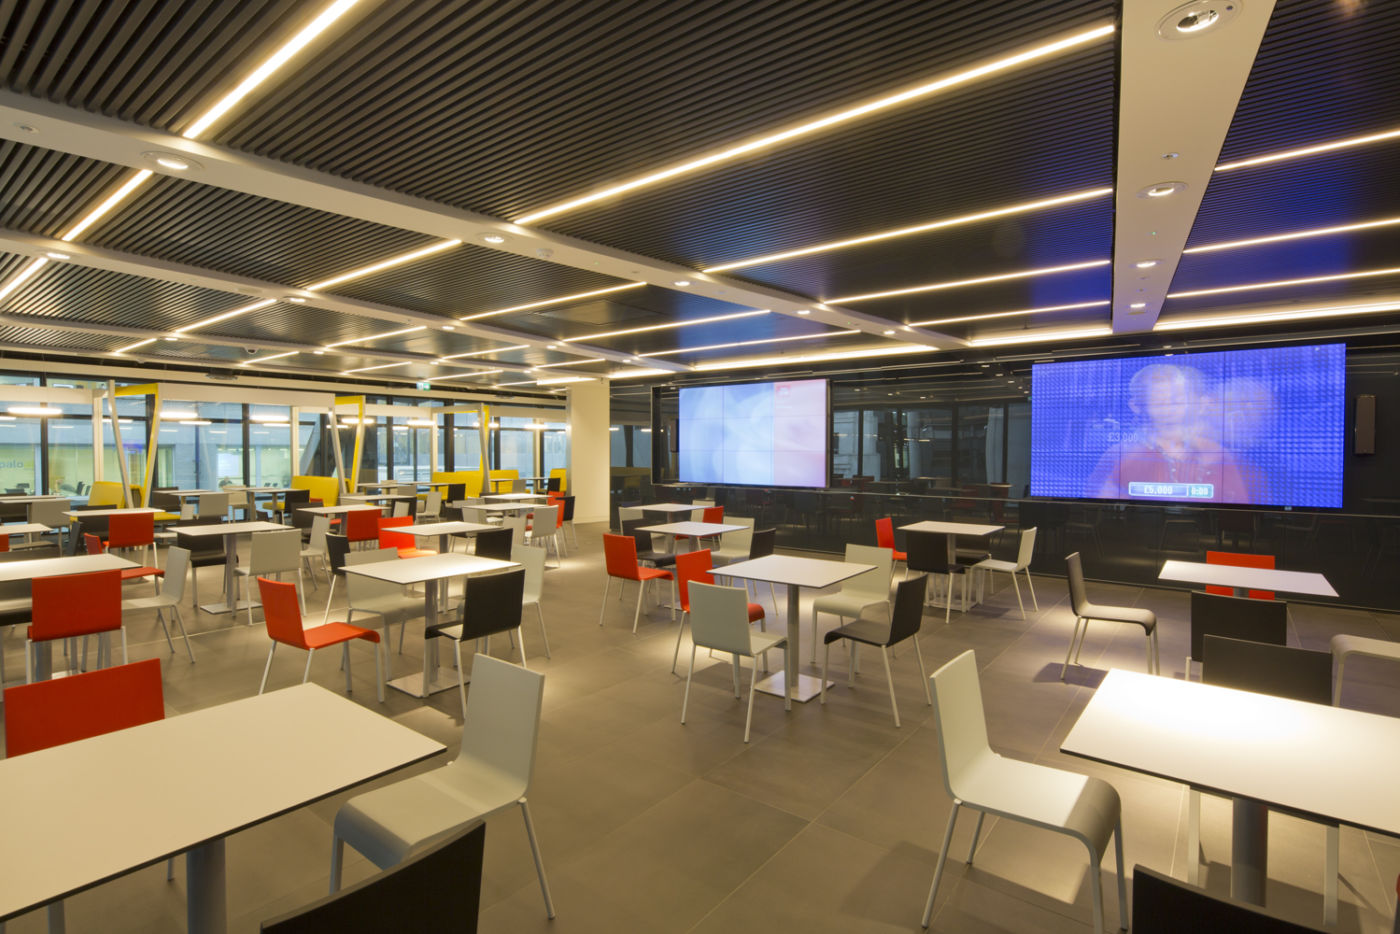 Staff breakout and cafe area with large TV screens and modern design